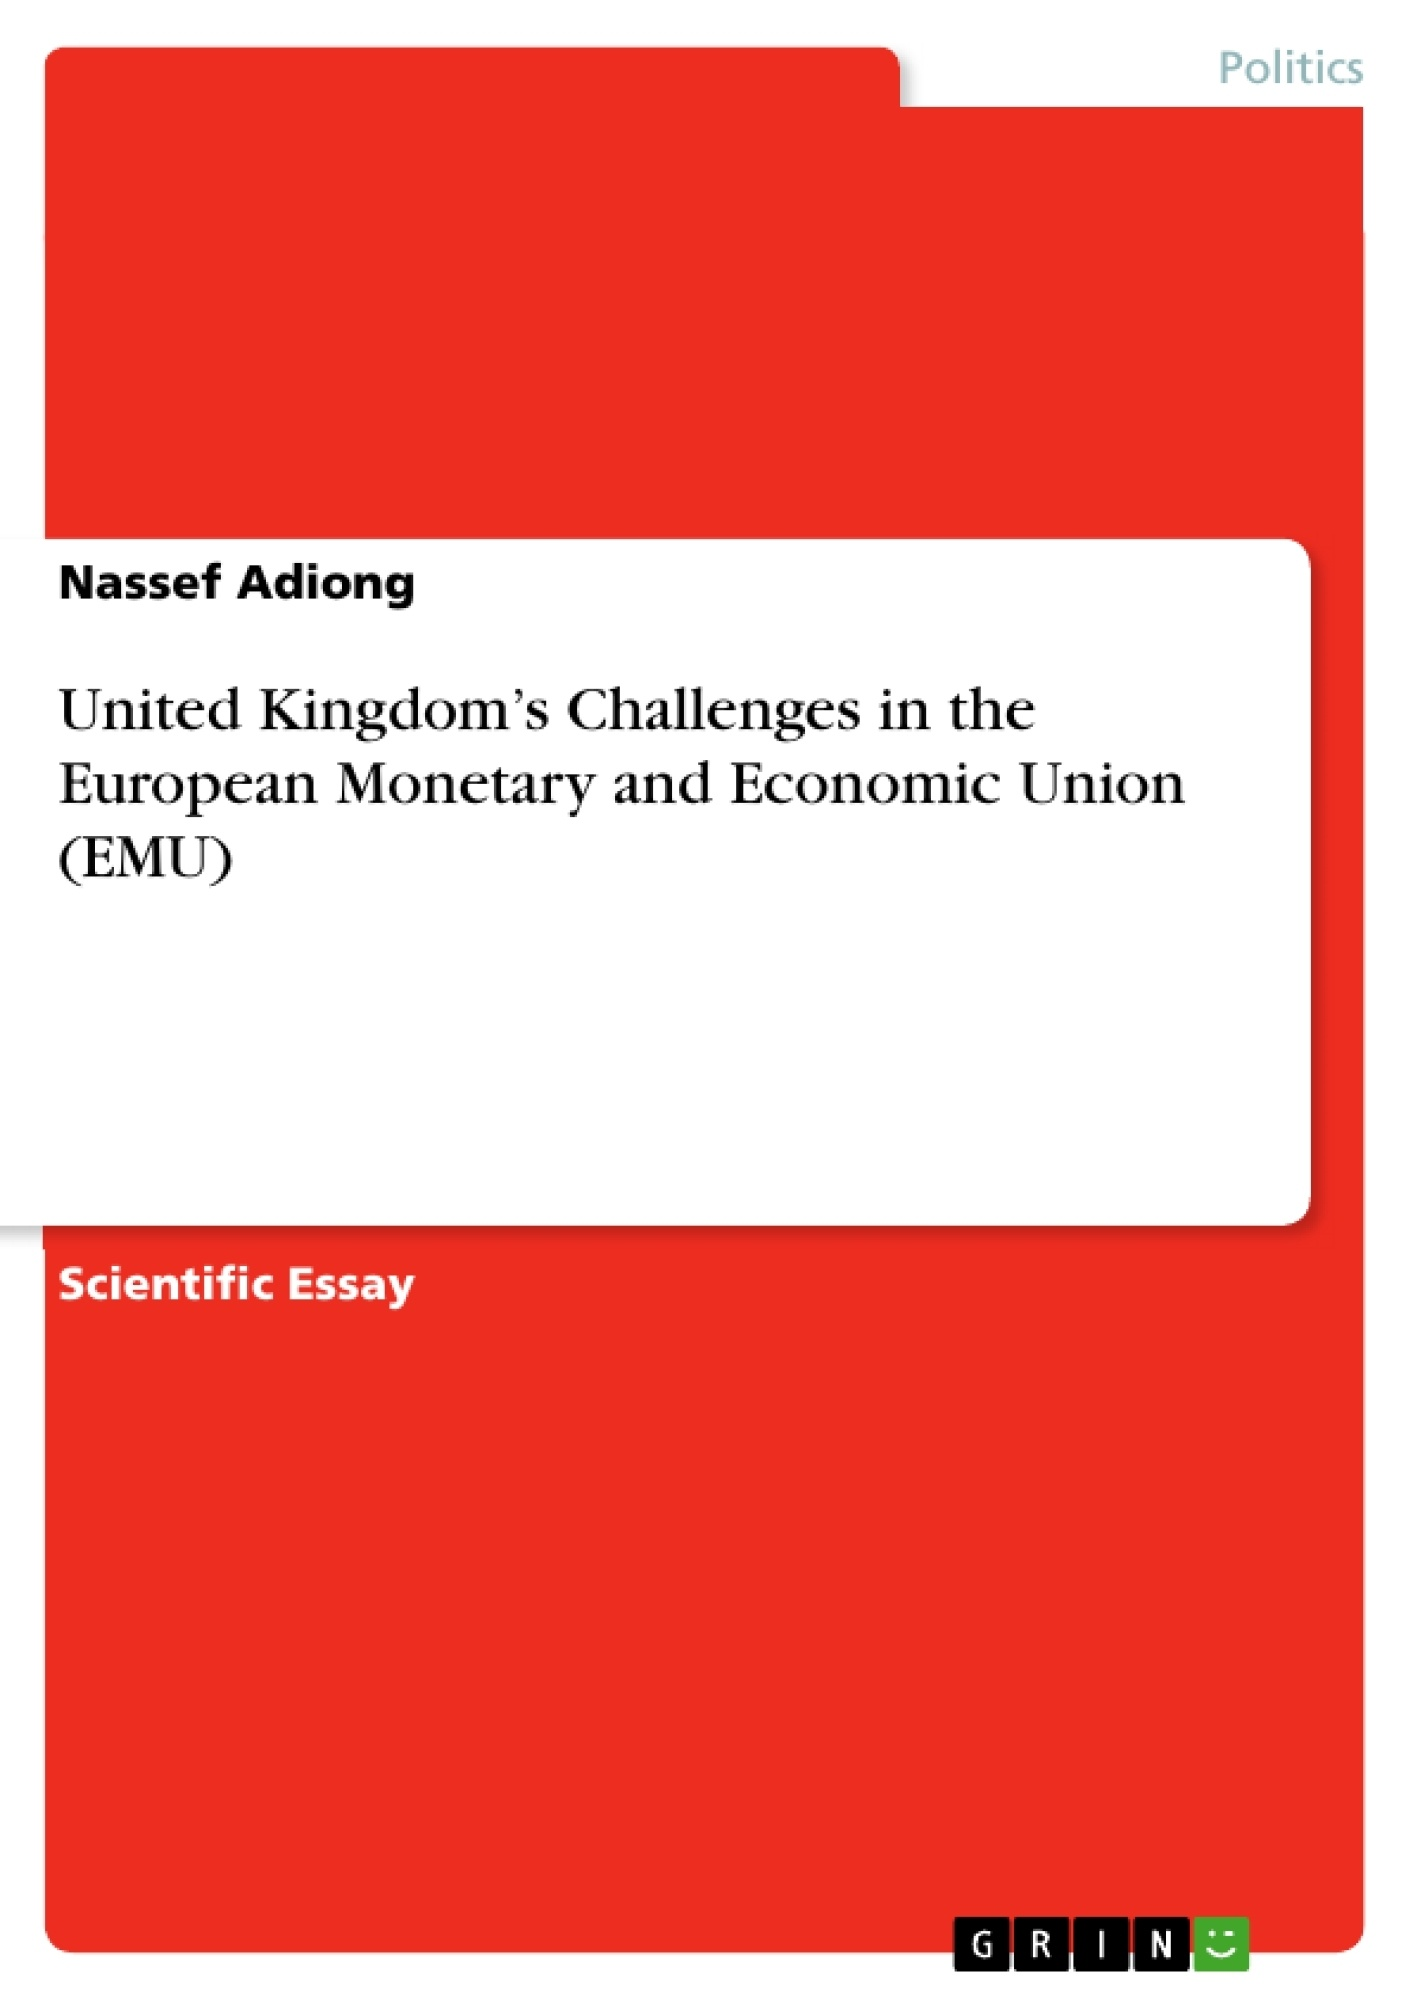 Title: United Kingdom's Challenges in the European Monetary  and Economic Union (EMU)